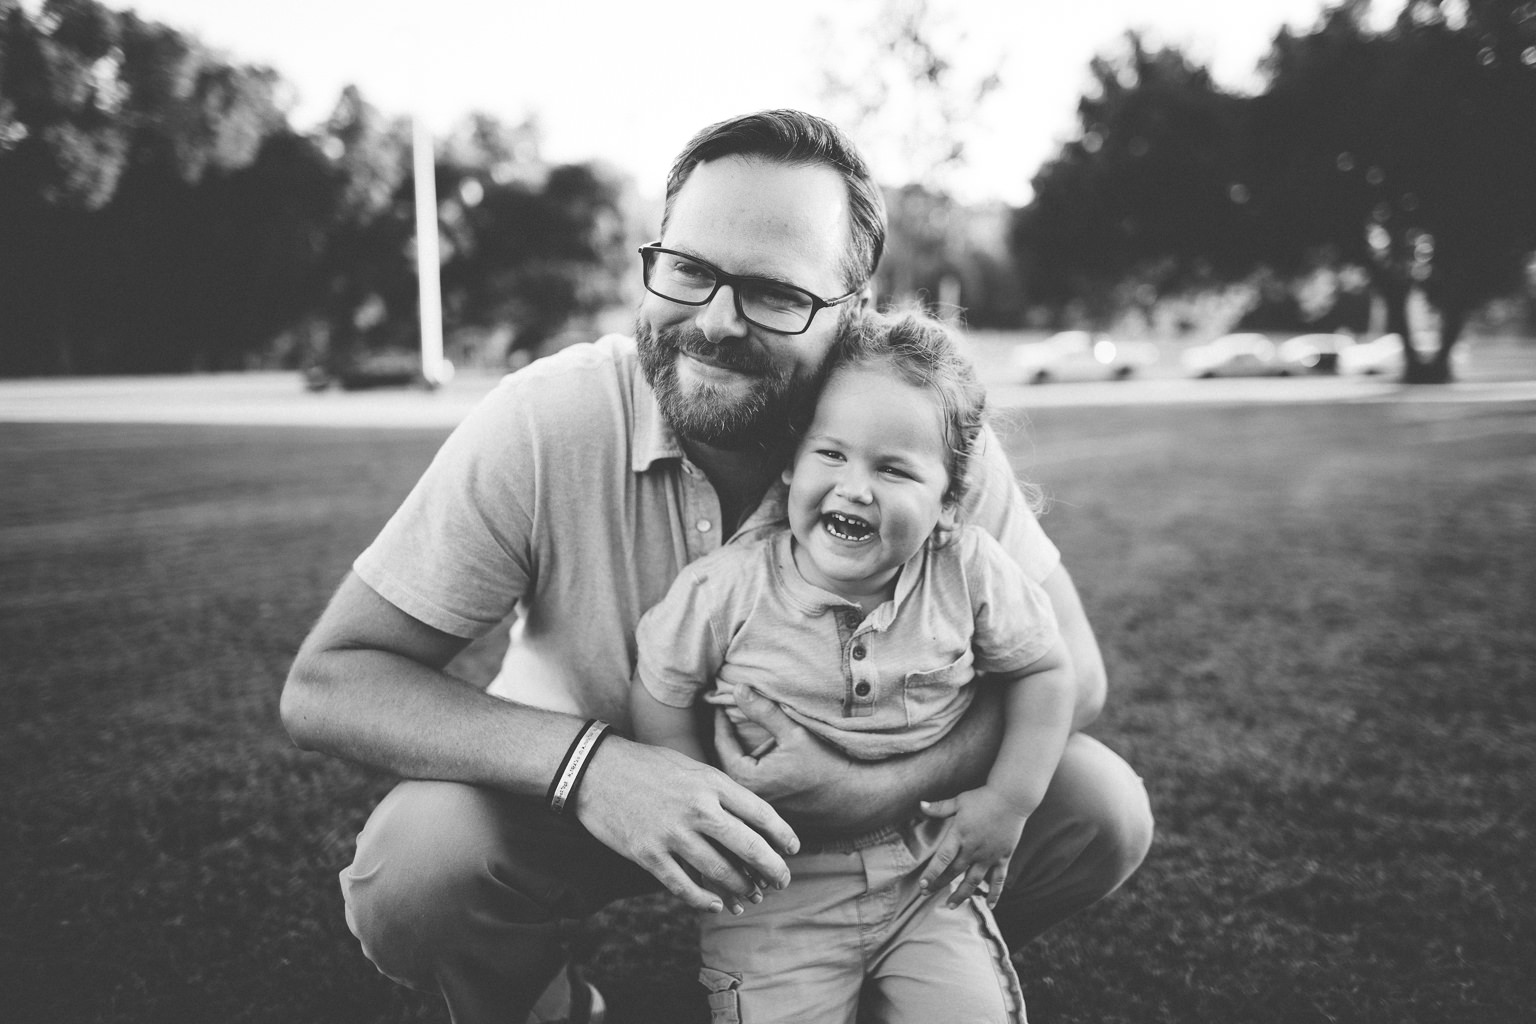 thomas wywrot photography nashville family photographer photos pictures tennessee tn goodlettsville hendersonville moss wright park outdoor sunset natural